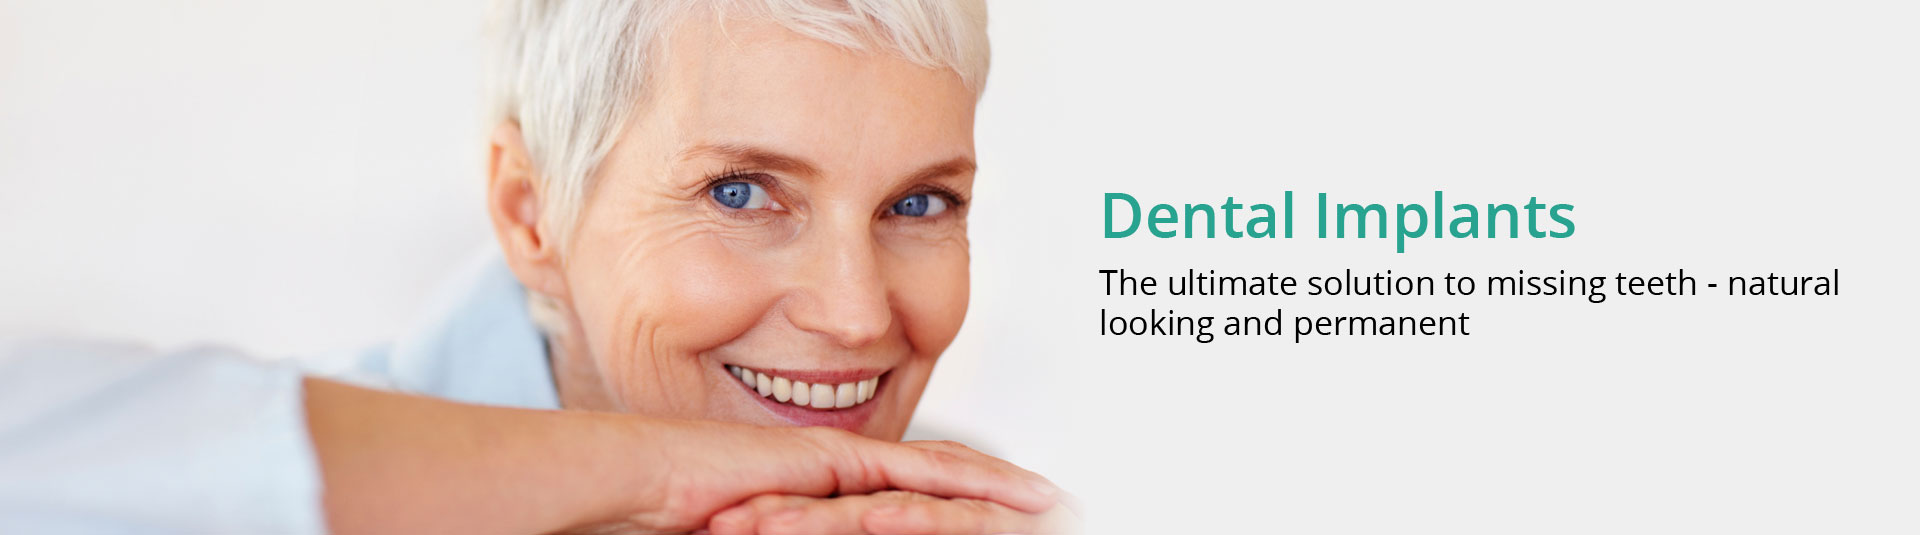 Dental Implants - Chingford Mount Dental Practice - London